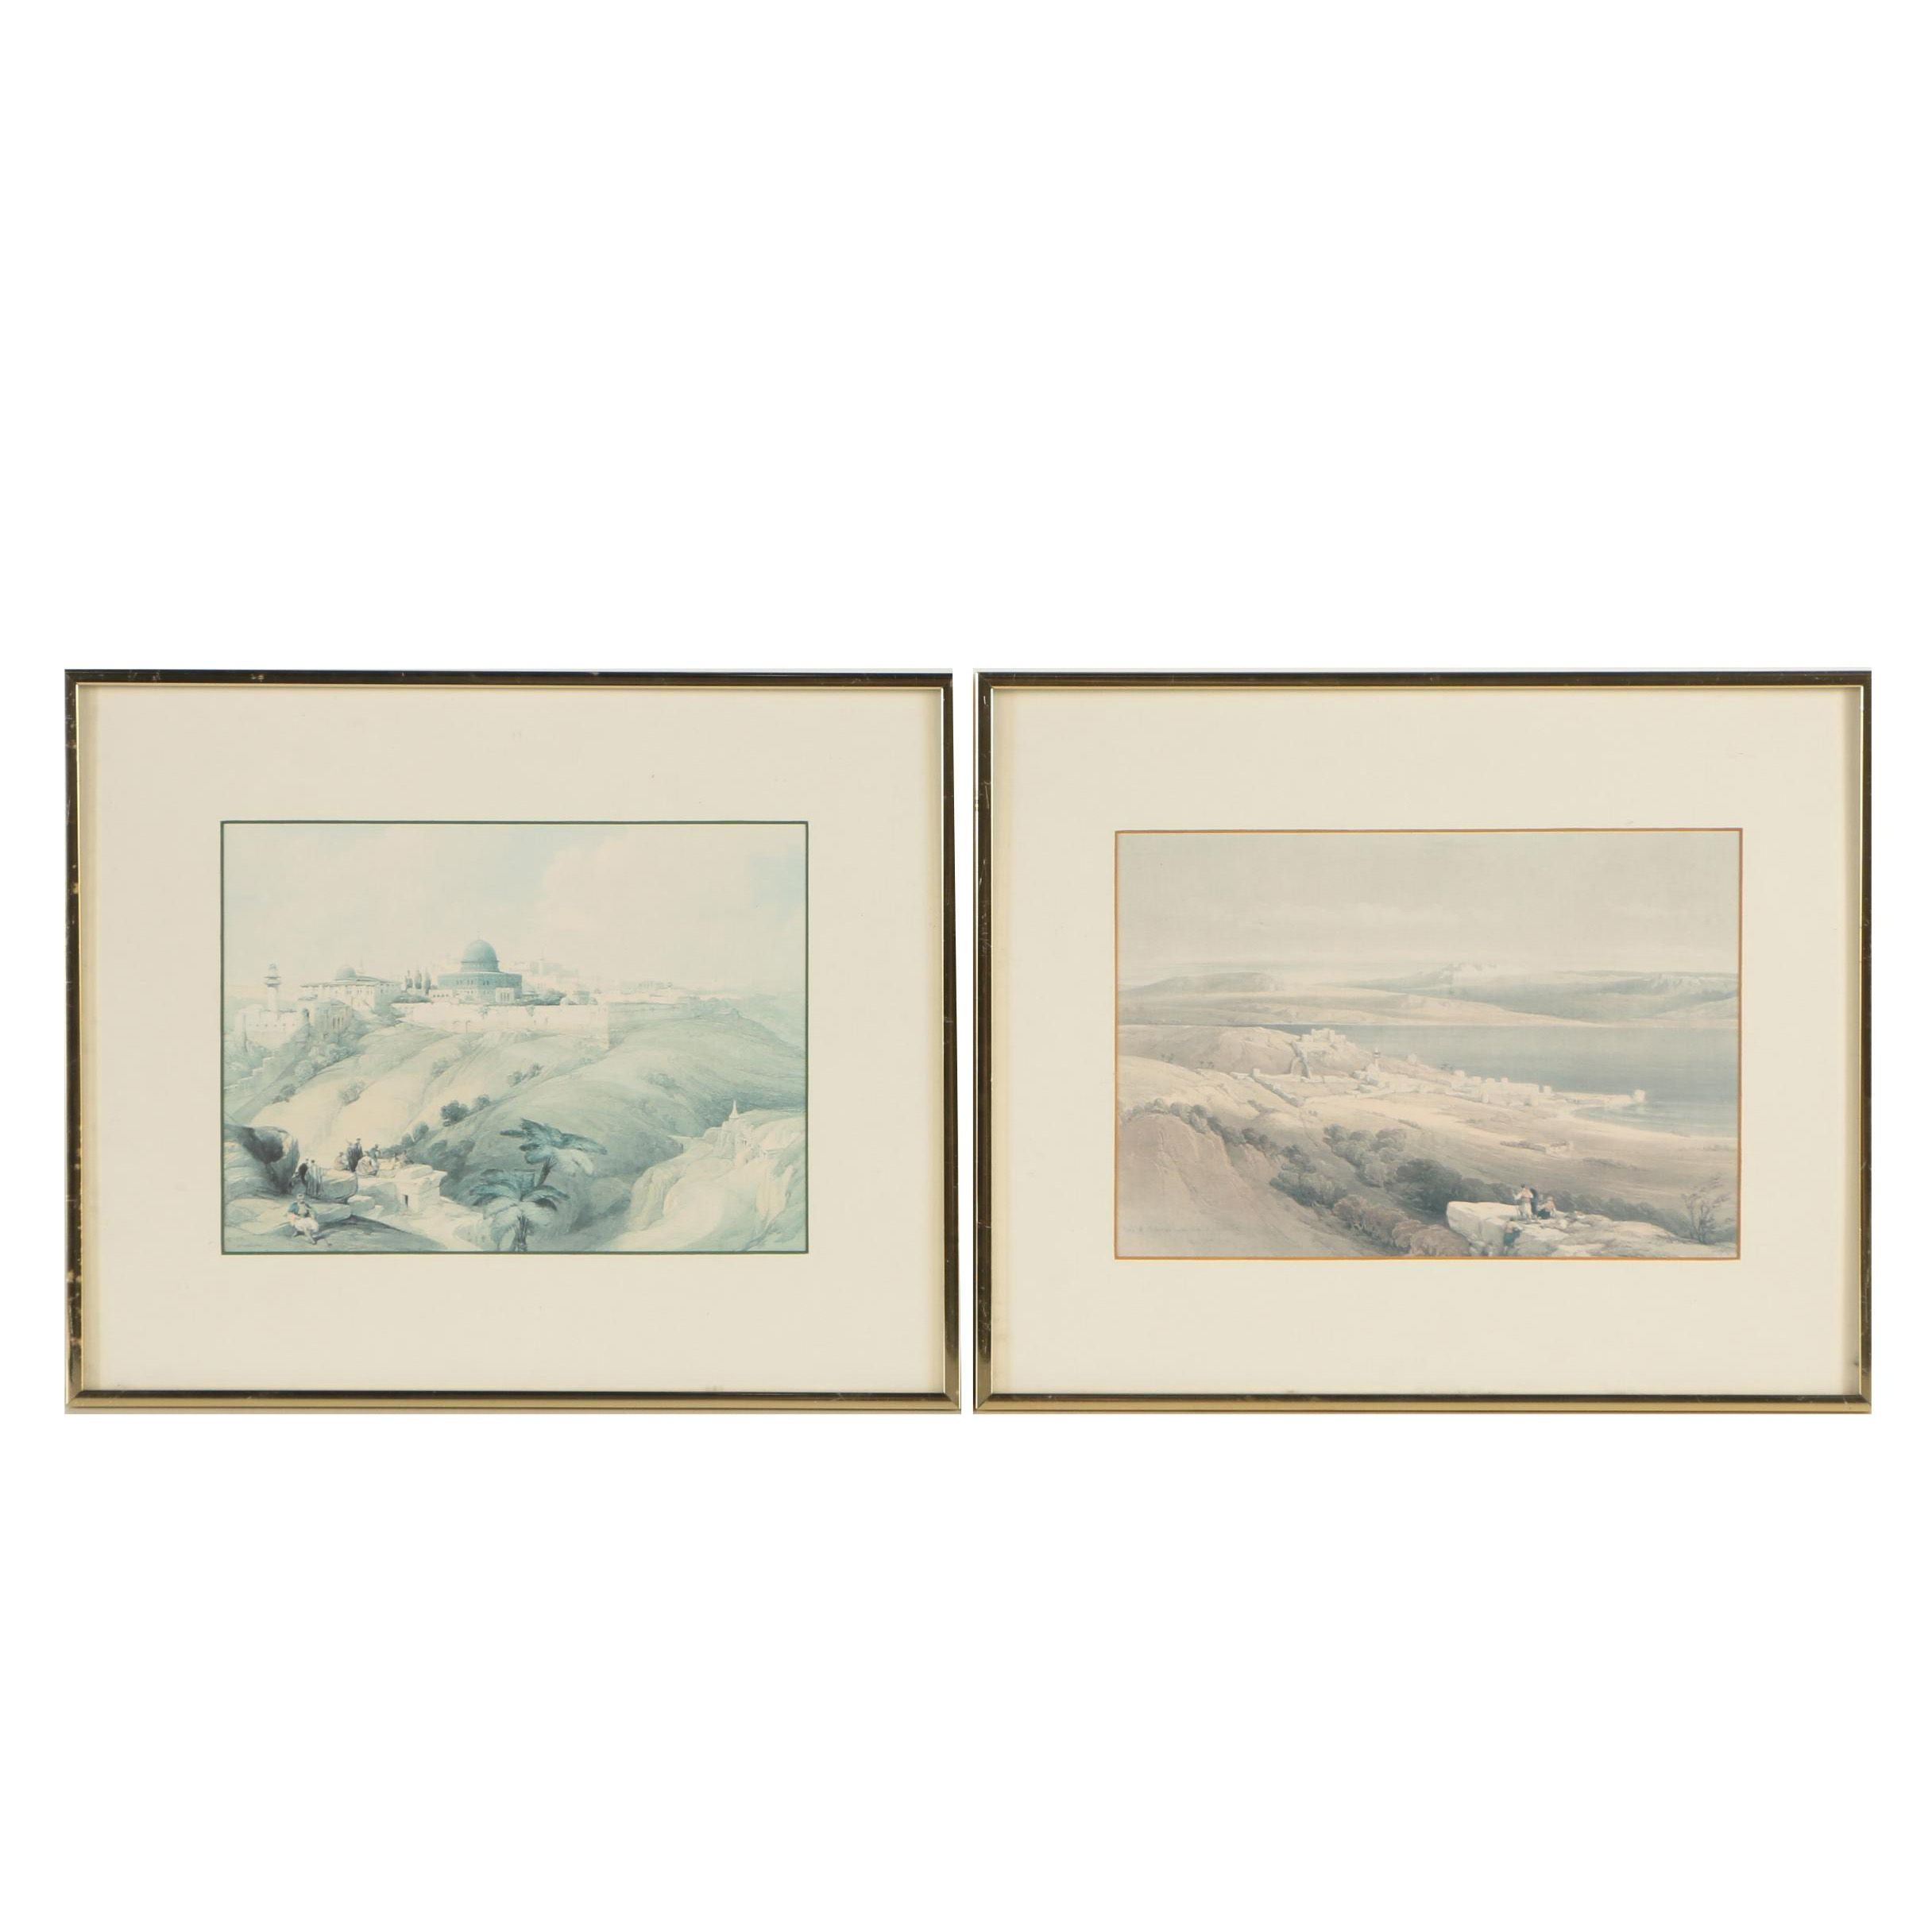 Offset Lithographic Prints After David Roberts of Biblical Scenes